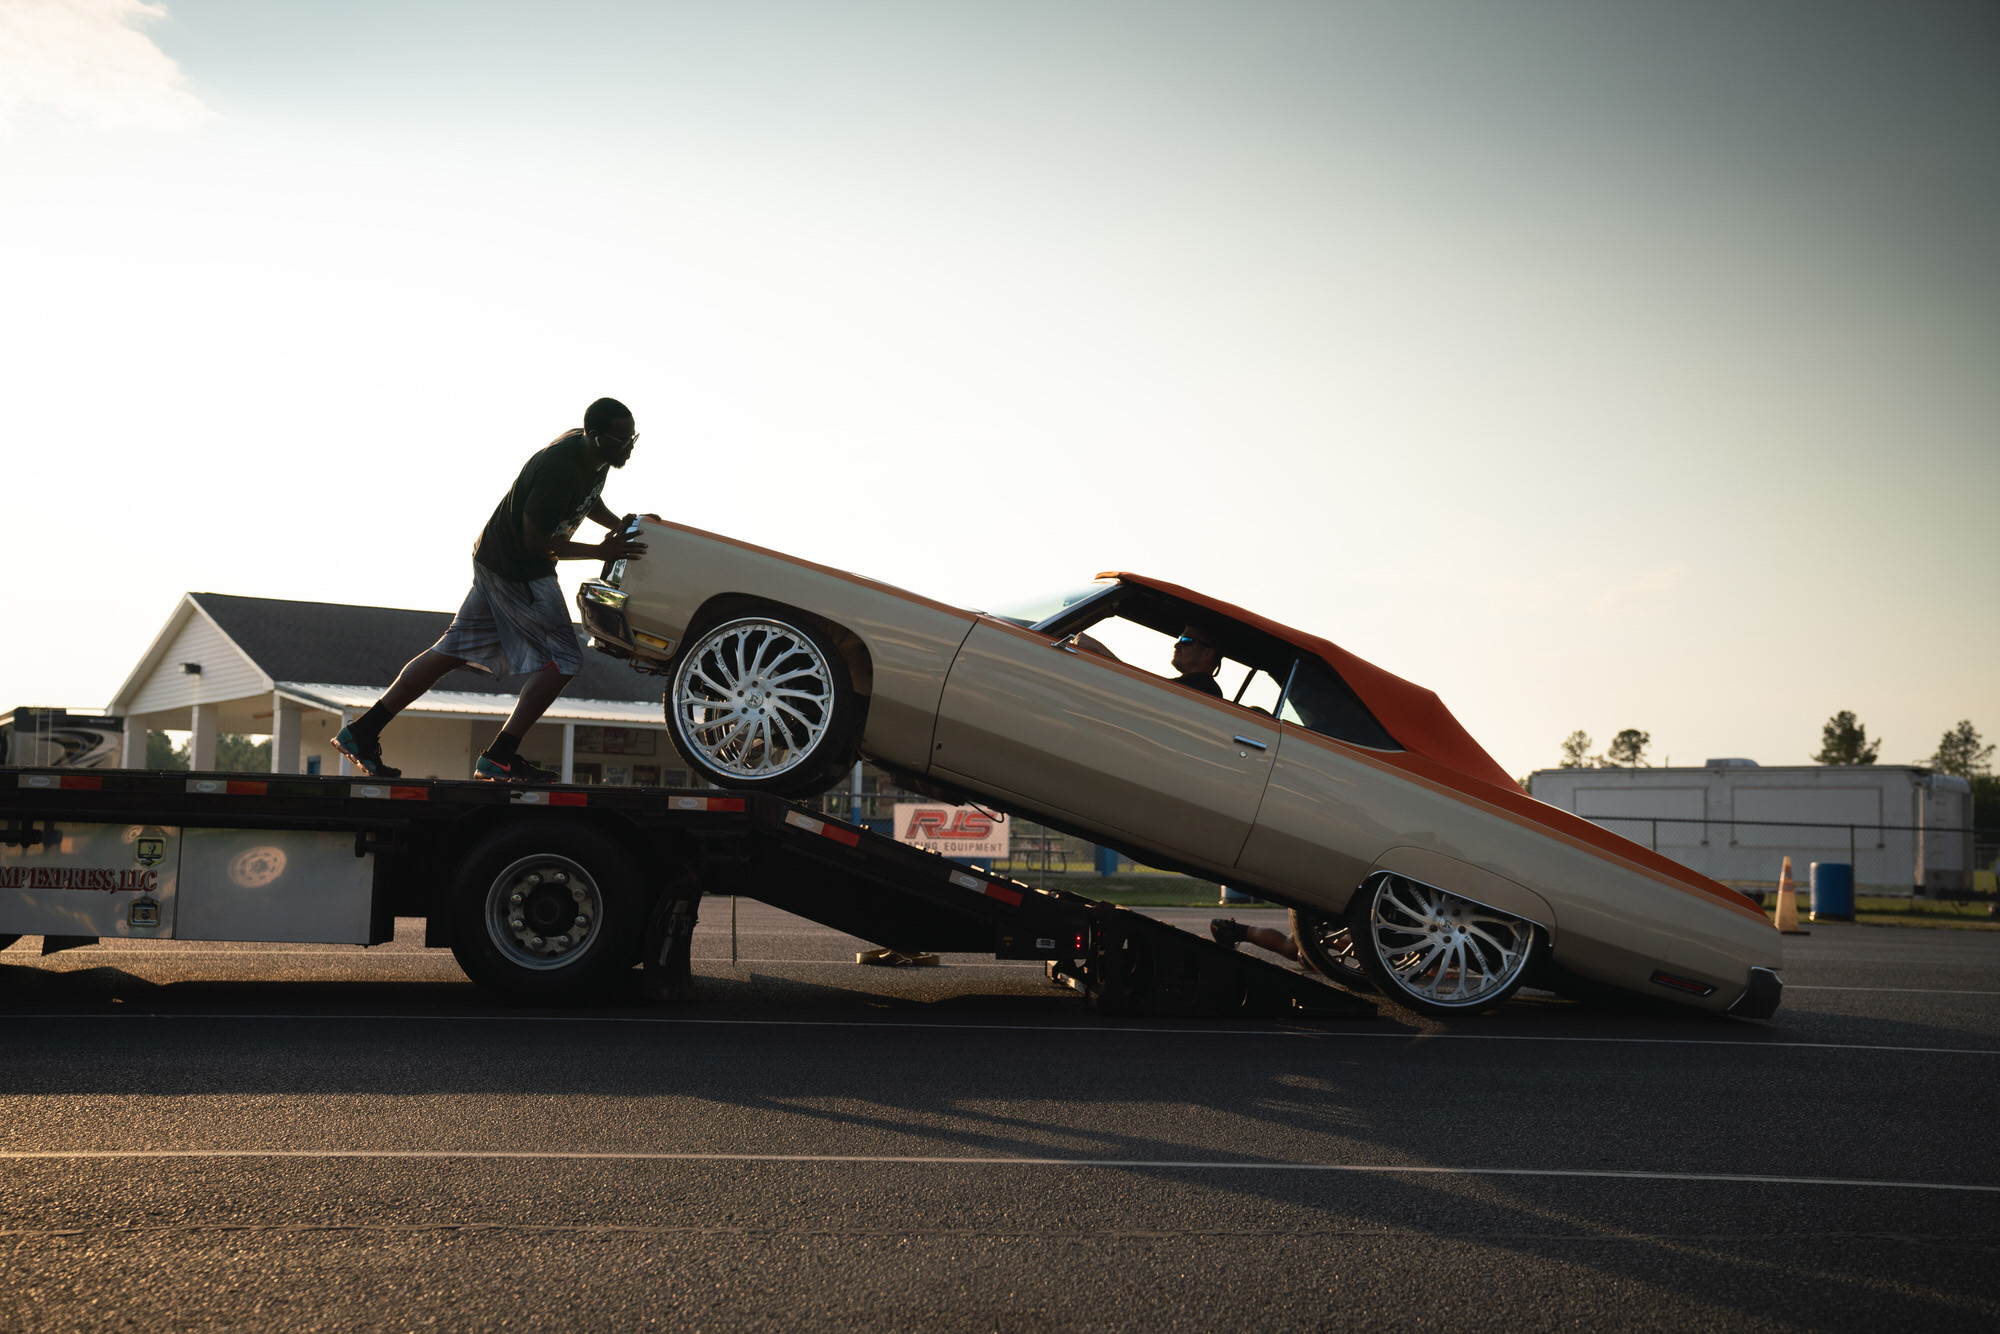 Donkmaster pushing Cantaloupe DONK off trailer at Orangeburg Dragstrip